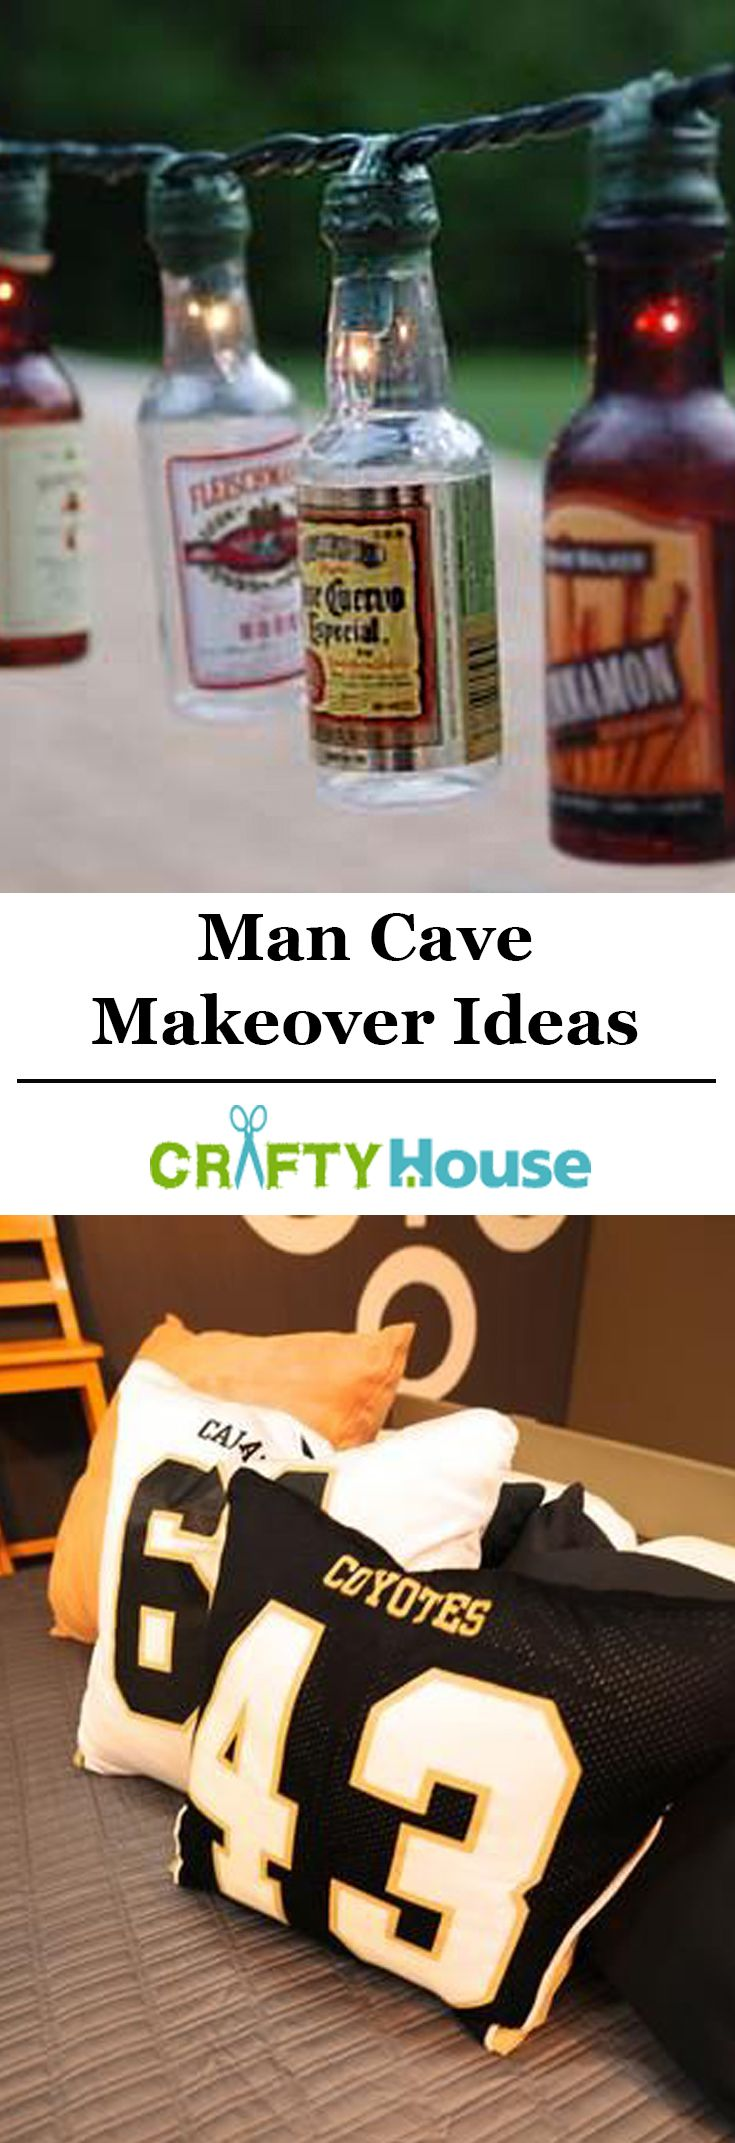 Man Cave Makeover Ideas On A Budget Manly Man Cave Pinterest